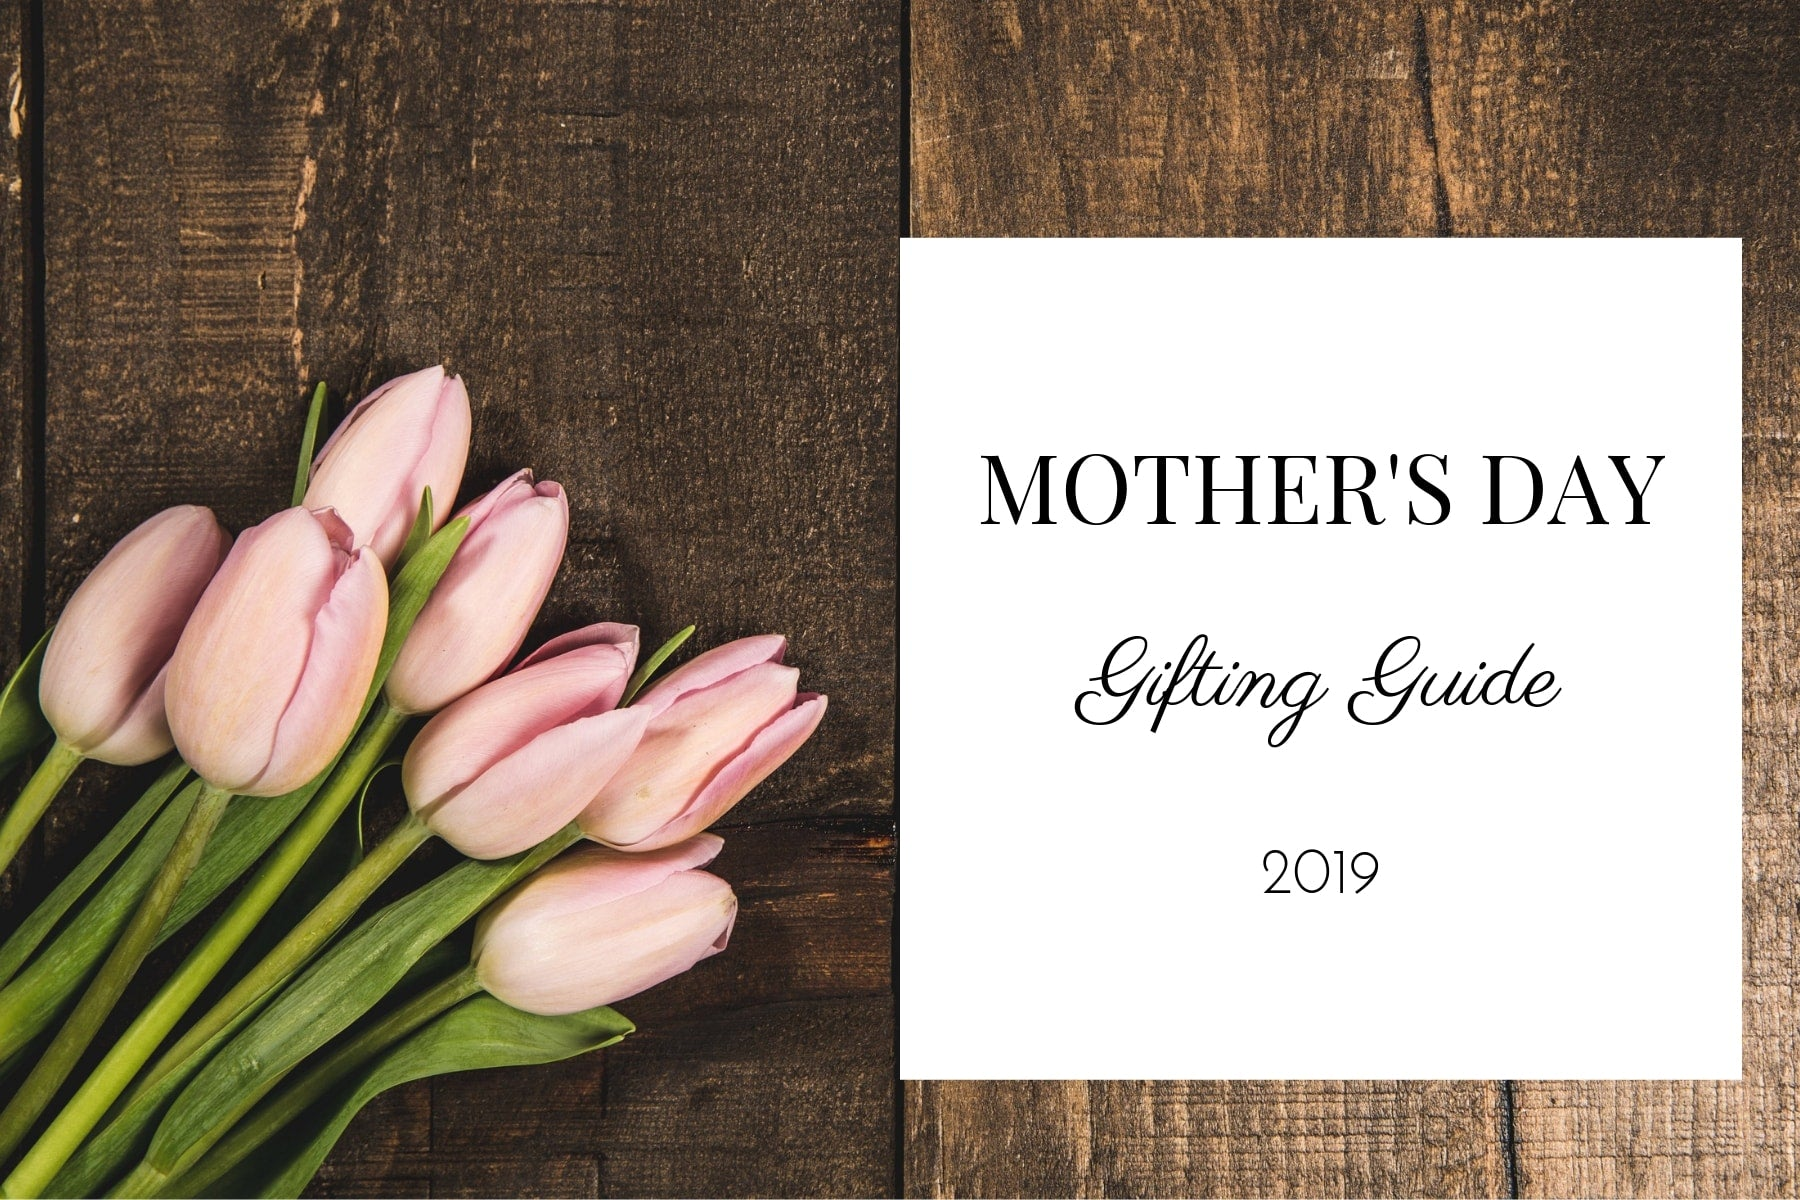 Home Artisan Mother's Day Gifting Guide 2019